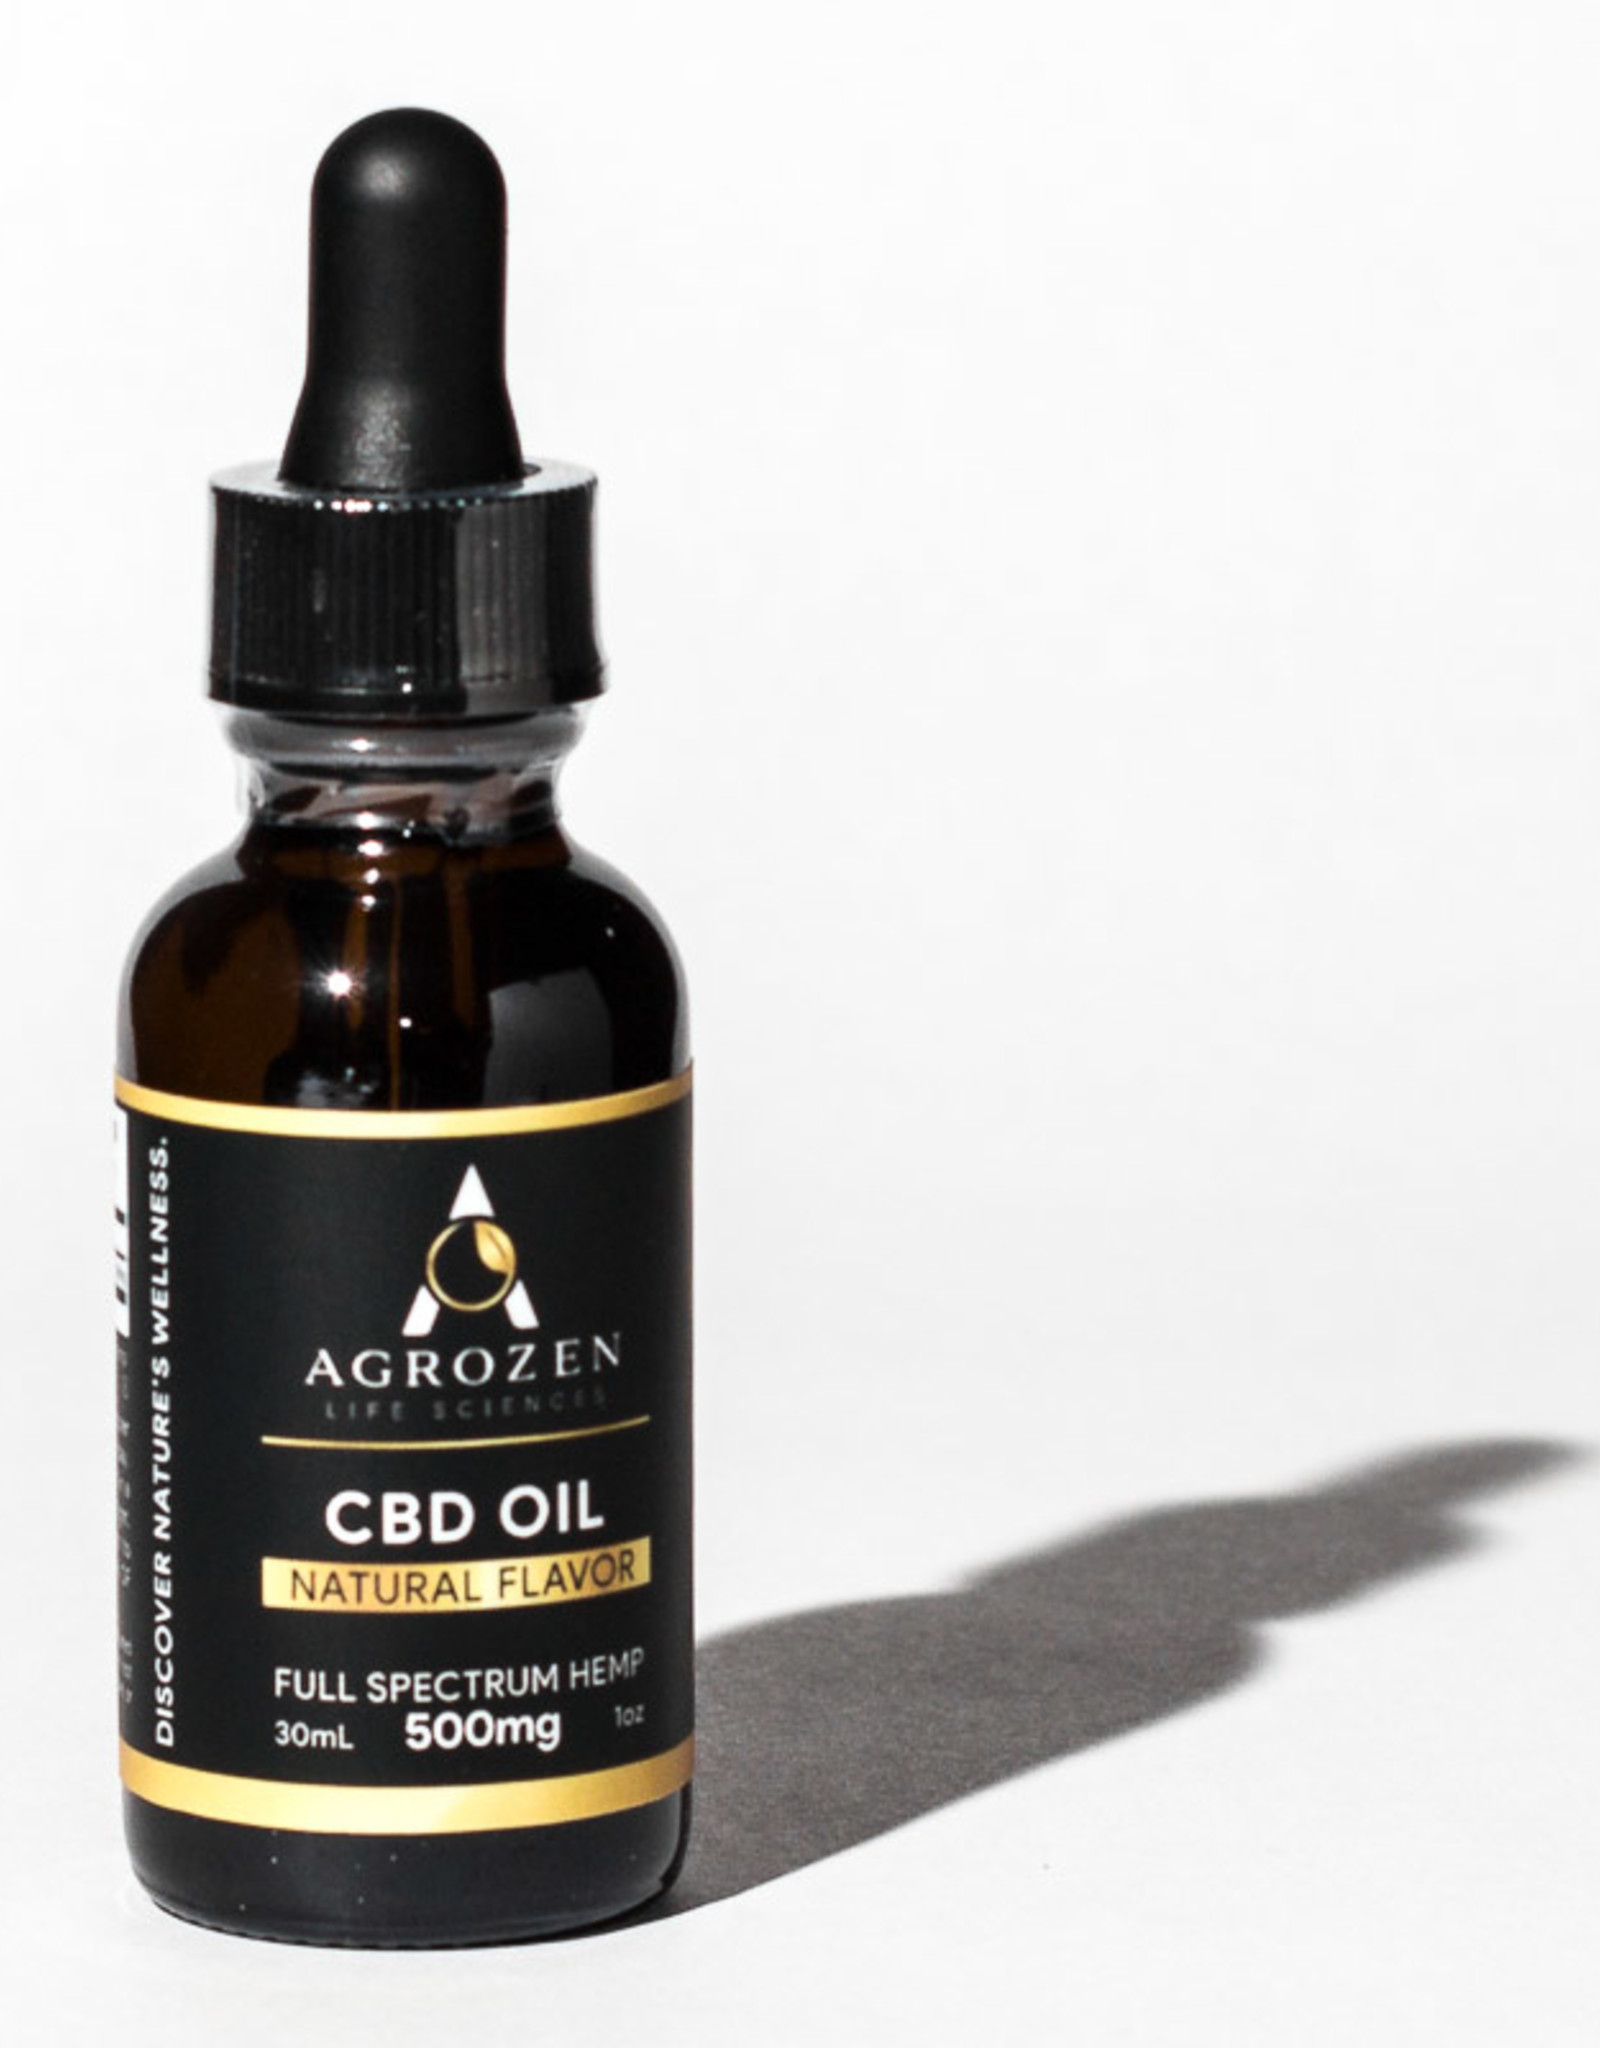 Agrozen Natural Full Spectrum CBD Oil - 30mL - 17mg/500mg